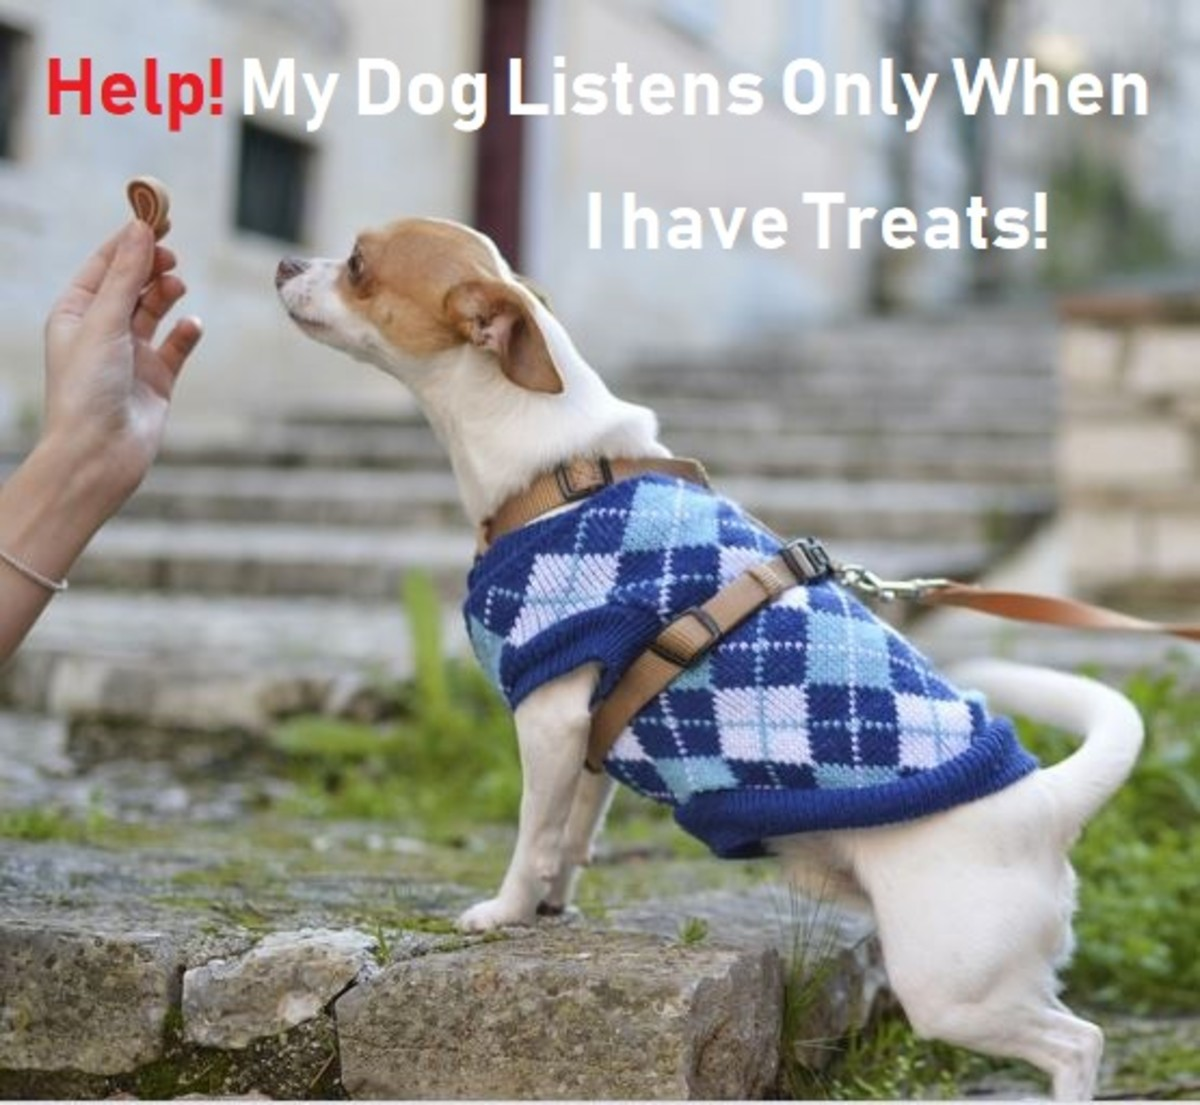 Help! My Dog Only Listens to Me When I Have Treats